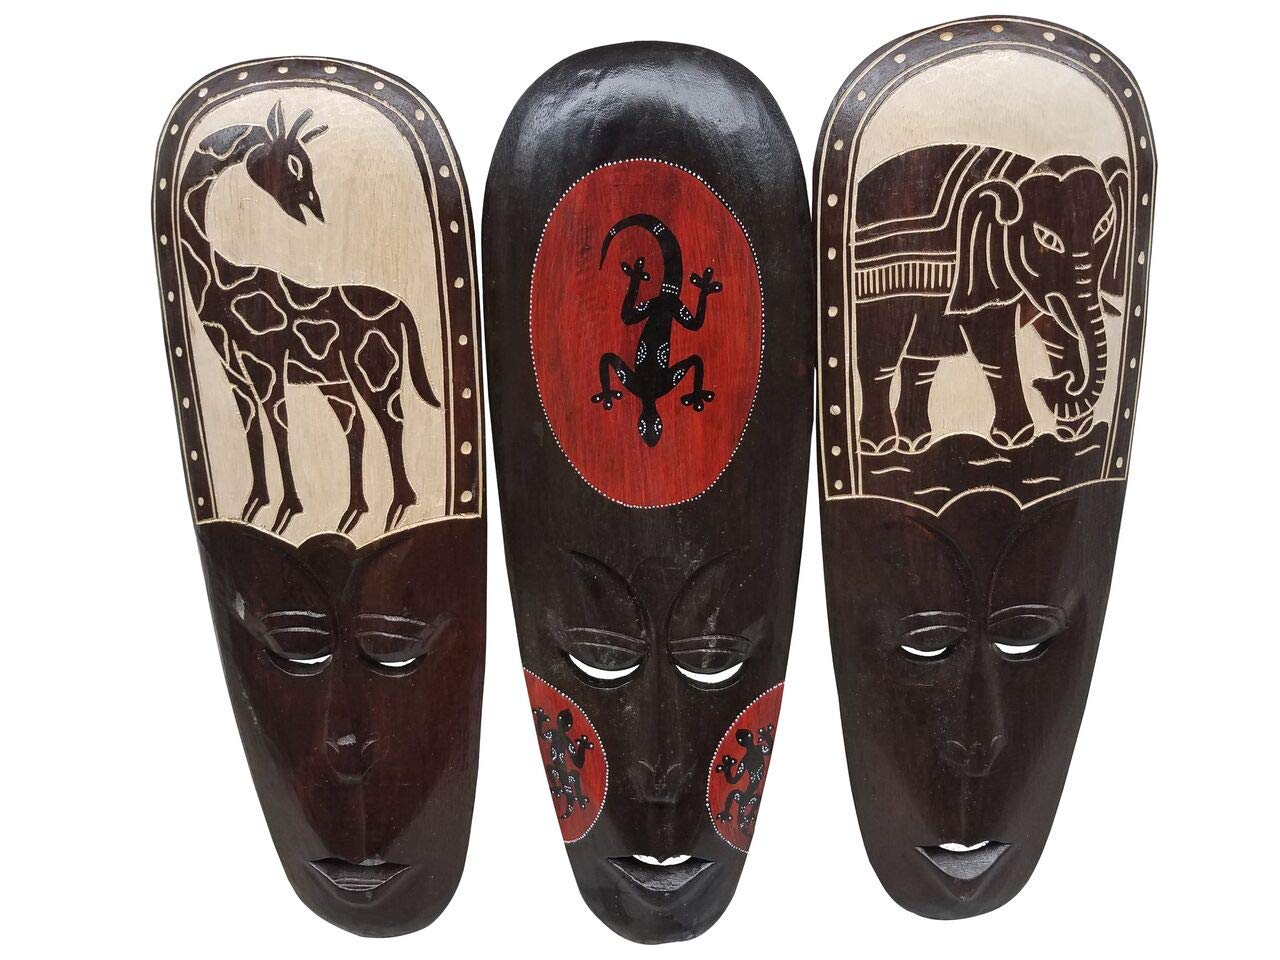 All Seas Imports Gorgeous Unique Hand Chiseled Elephant, Giraffe, Gecko Set of (3) Wood African Style Wall Decor Masks with Beautiful Design! by All Seas Imports